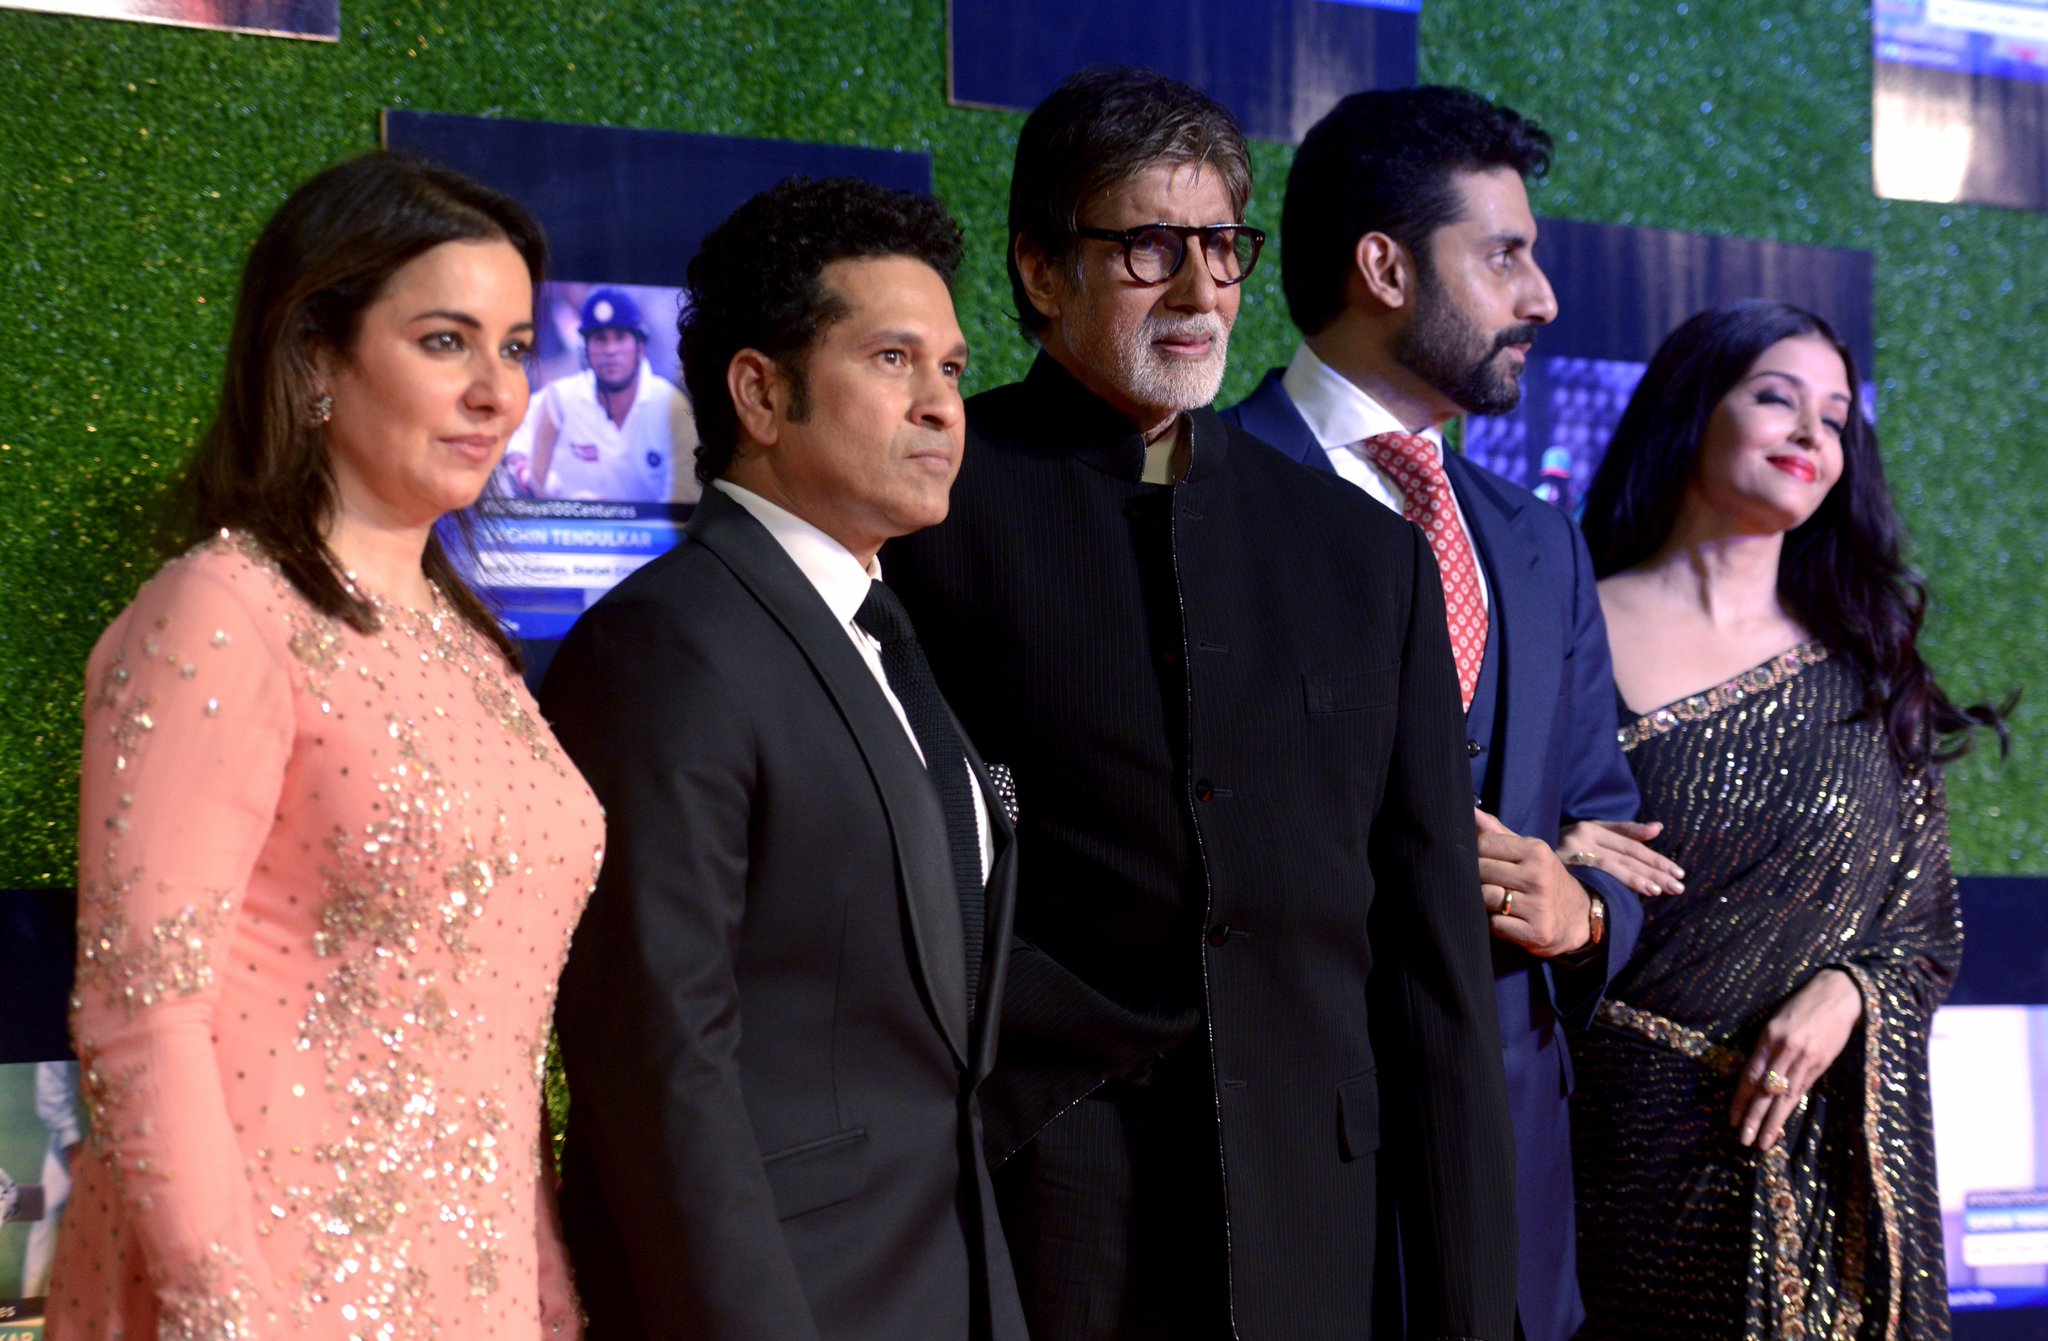 Amitabh Bachchan, Abhishek Bachchan and Aishwarya Rai attending the premiere of film 'Sachin: A Billion Dreams'. Sachin Tendulkar and his wife Anjali were the perfect hosts on the occasion.